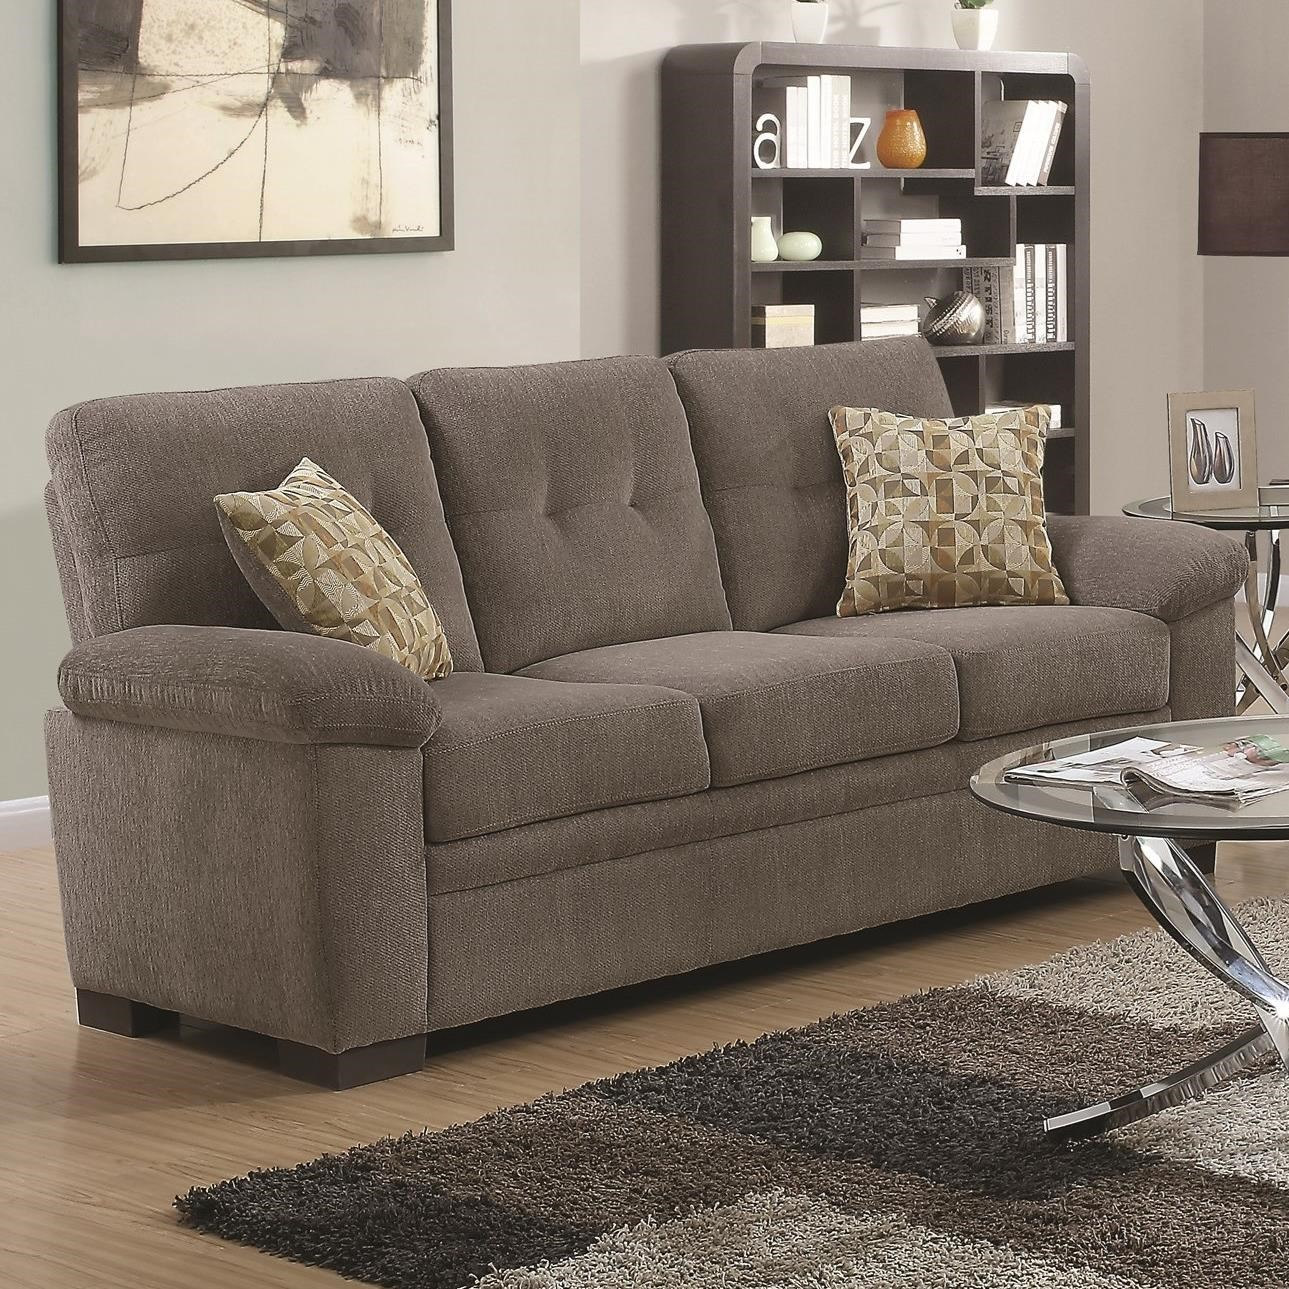 Fairbairn Sofa With Casual Style